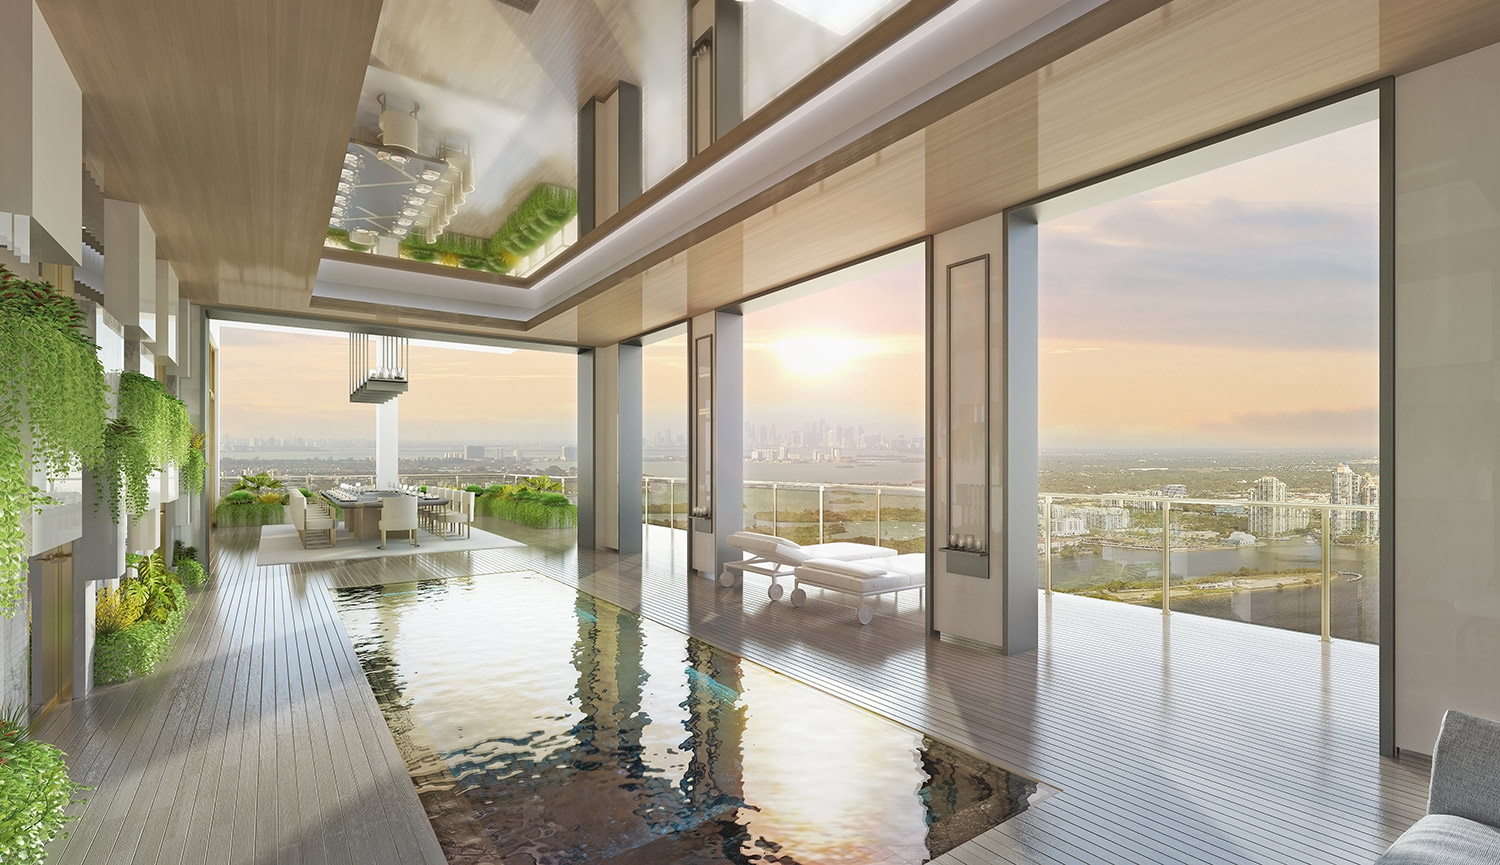 Penthouse Pool at the Mansions of Acqualina